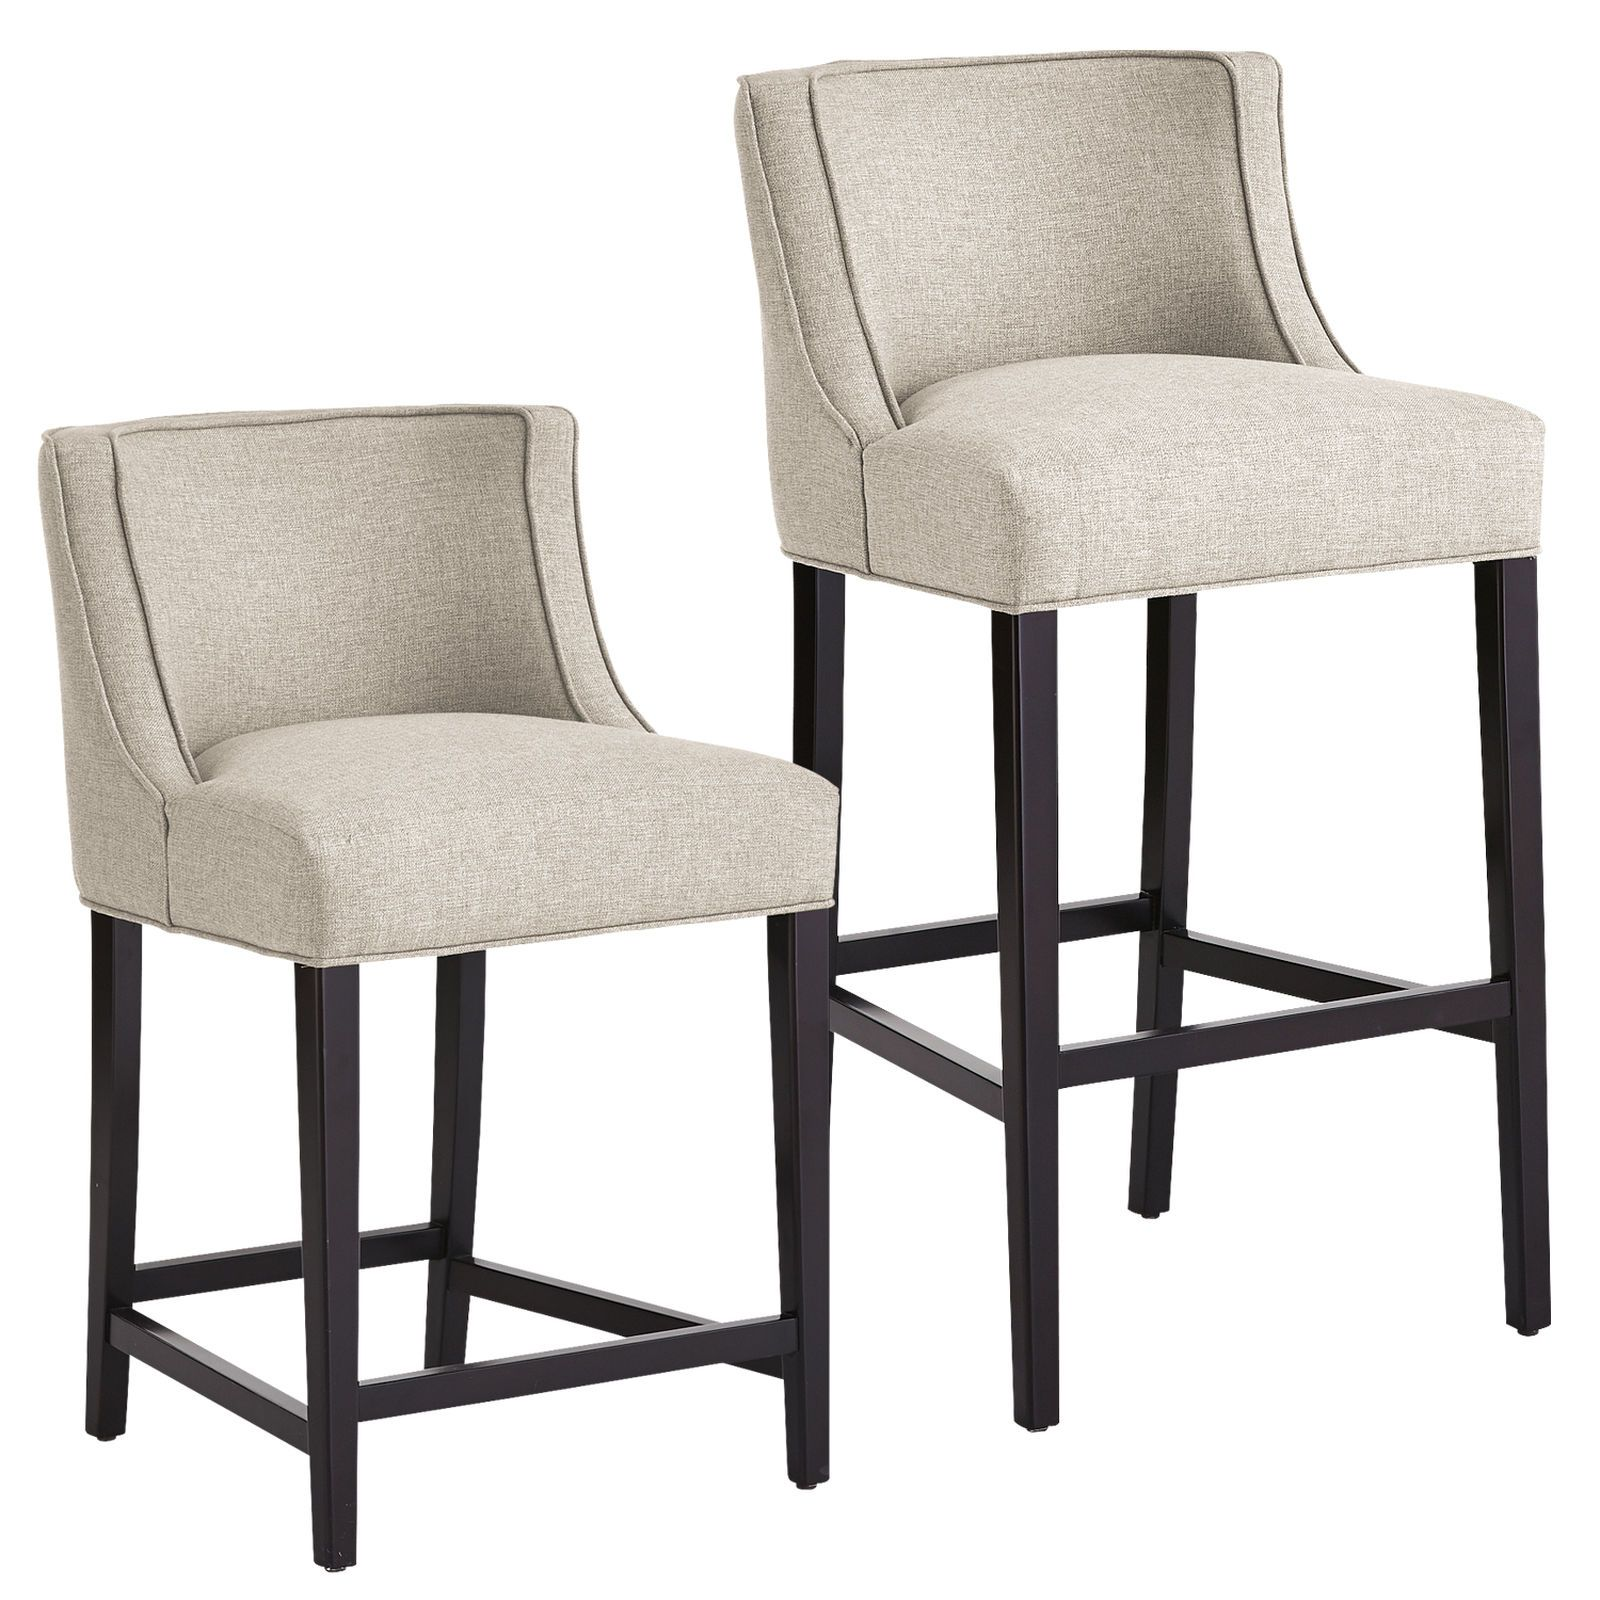 Nailhead Counter Height Stools Part - 19: Gorgeous Upholstered Bar Stools In The Kitchen Add The Right Amount Of  Elegance. HomeDecorators.com | Kitchen | Pinterest | Bar Stool, Stools And  Bar